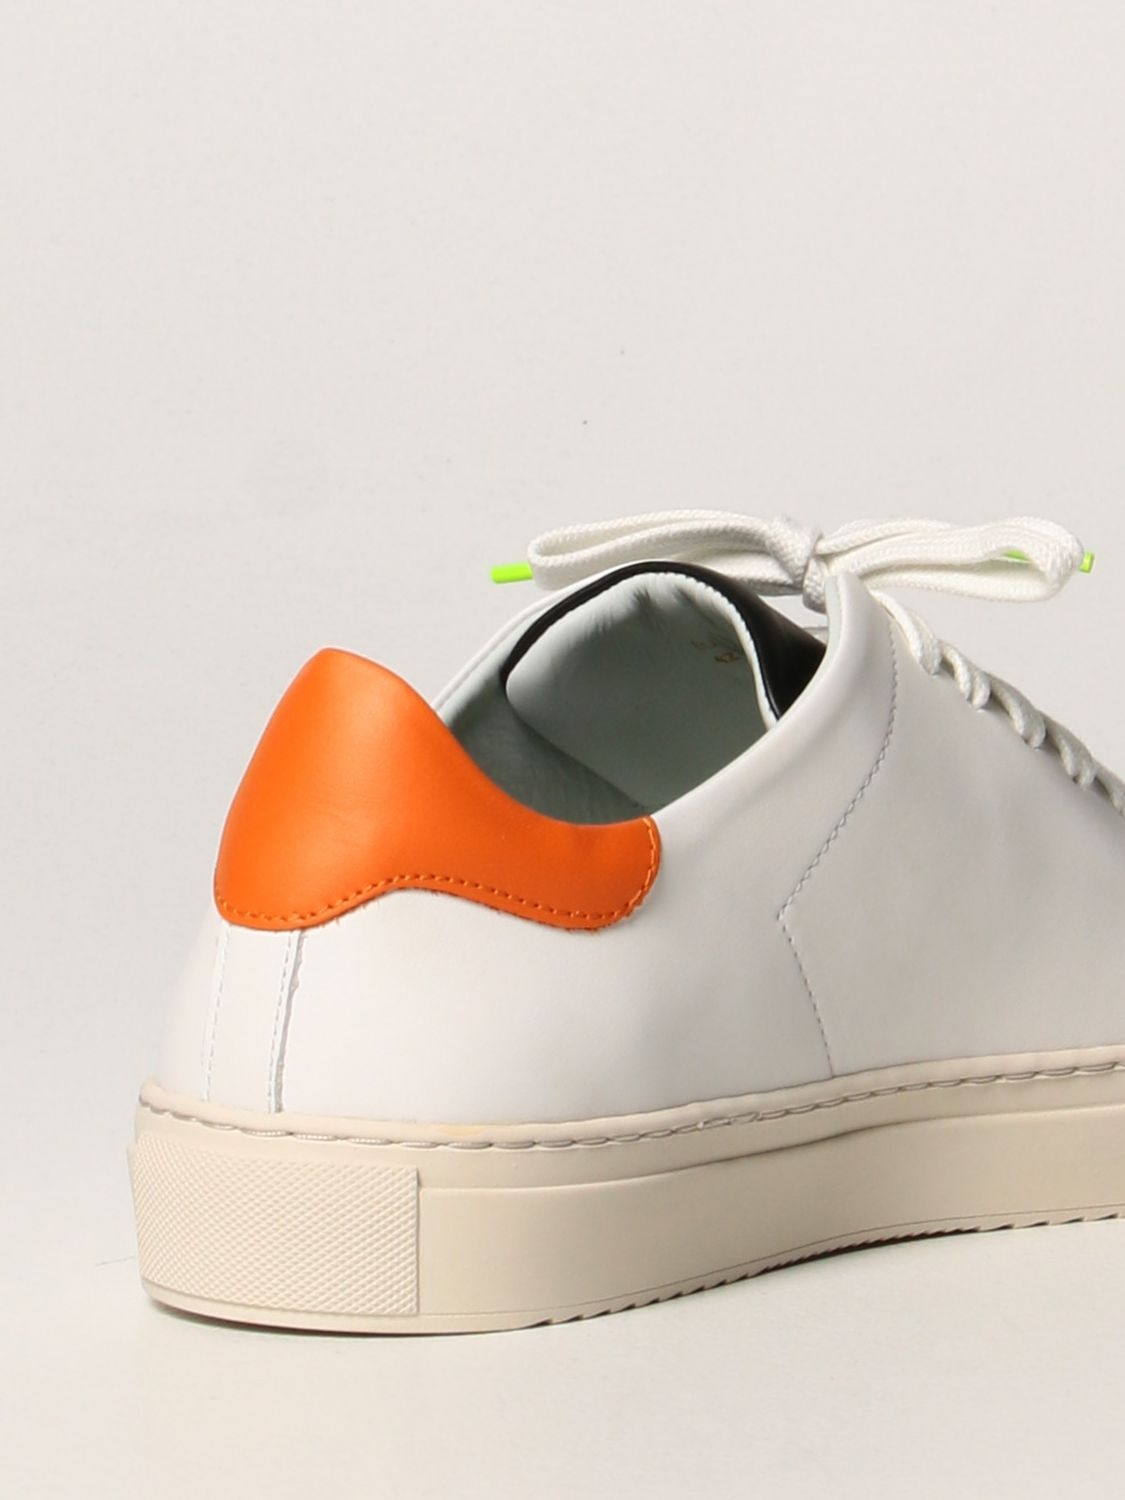 Trainers Axel Arigato: Axel Arigato sneakers in leather with logo orange 3